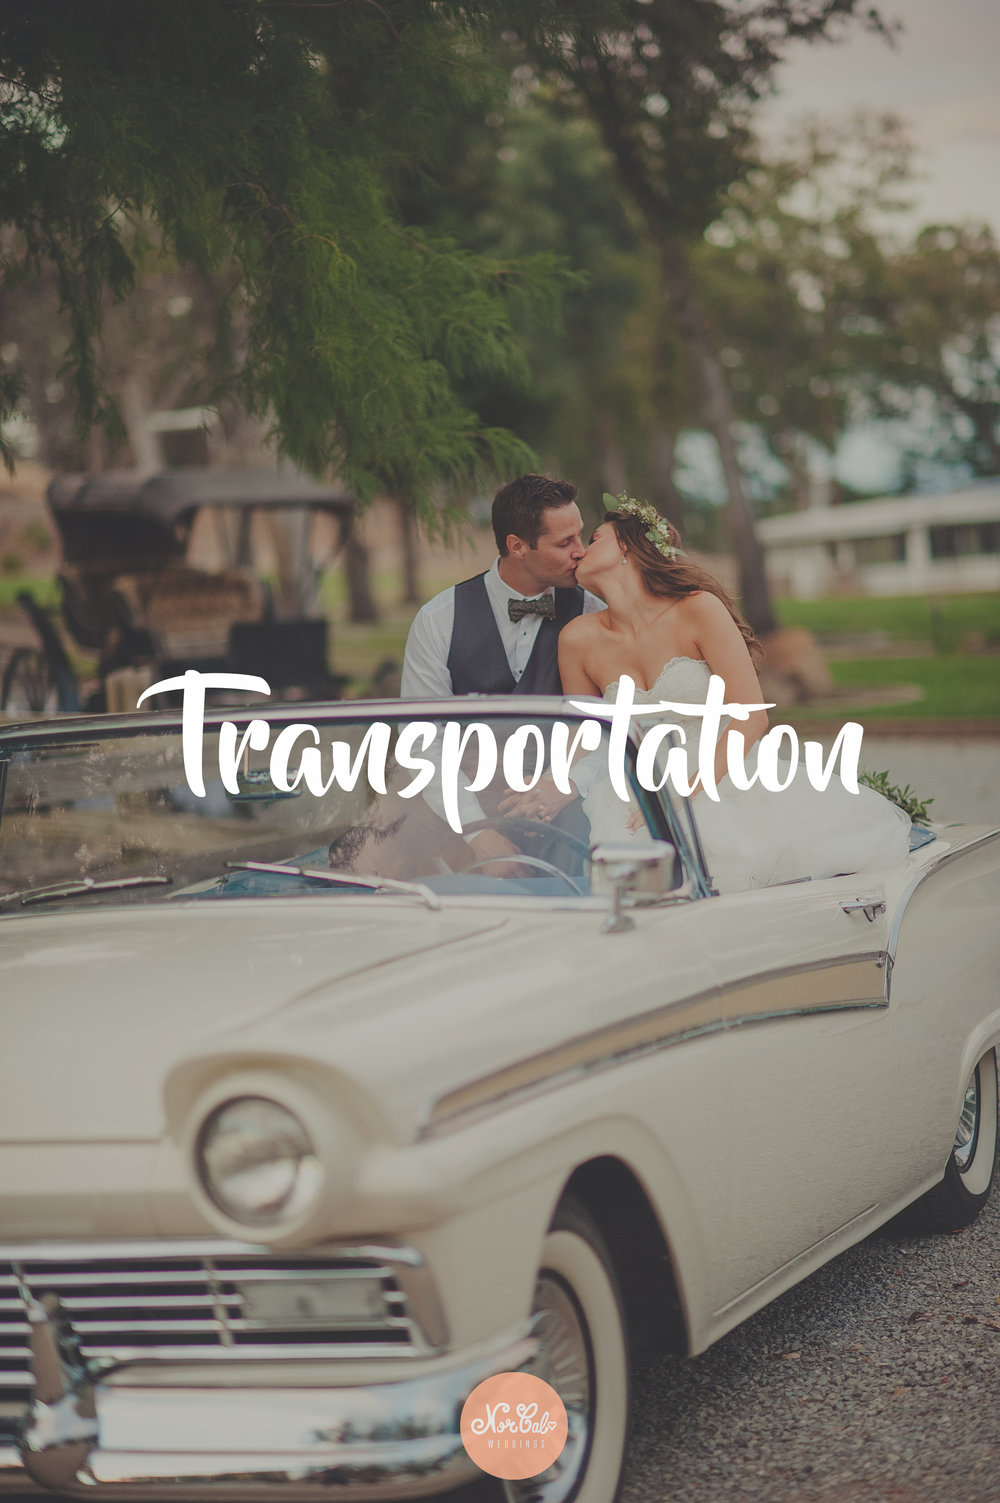 NorCal Weddings Transportation Services.jpg